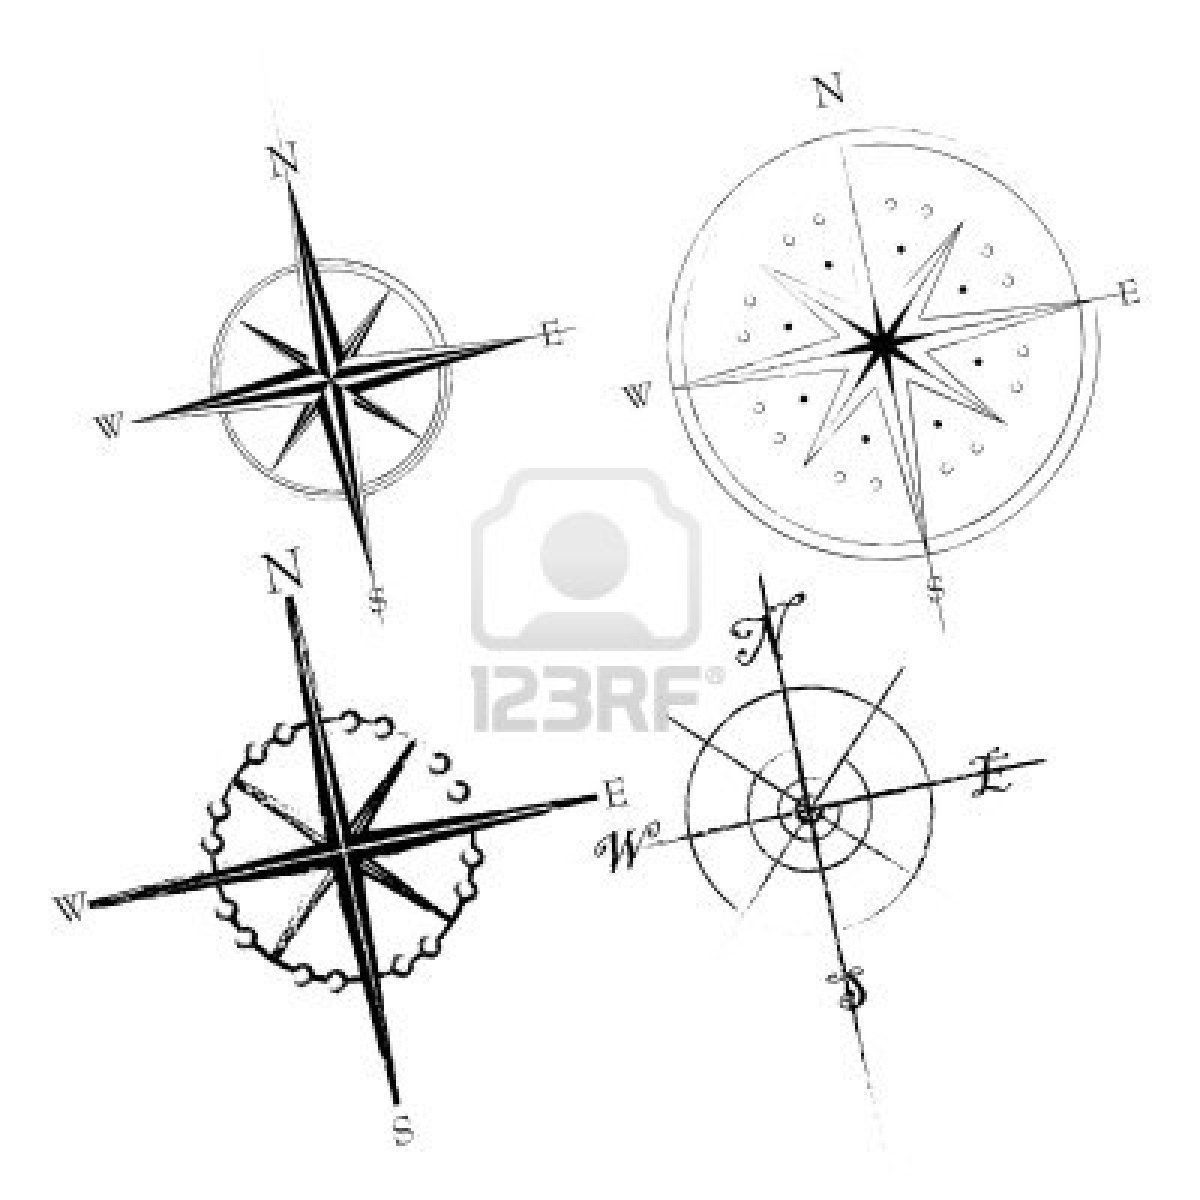 Compass Rose Lower Right Corner With Simpler Script For